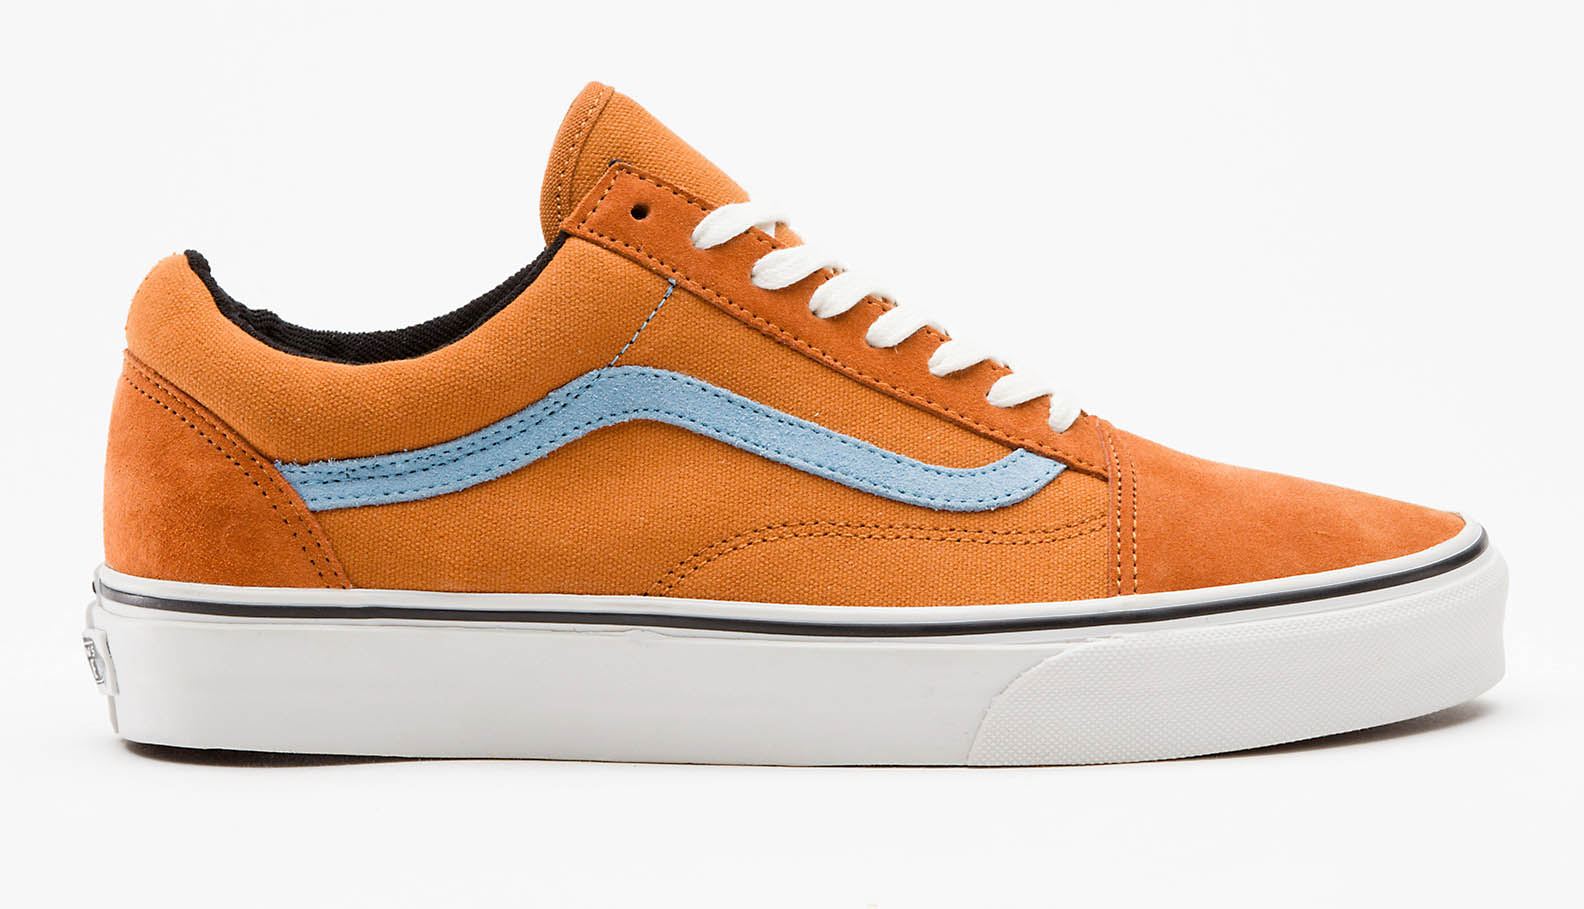 02838ab55f Vans California Old Skool Reissue - Glazed Ginger Heritage Blue ...